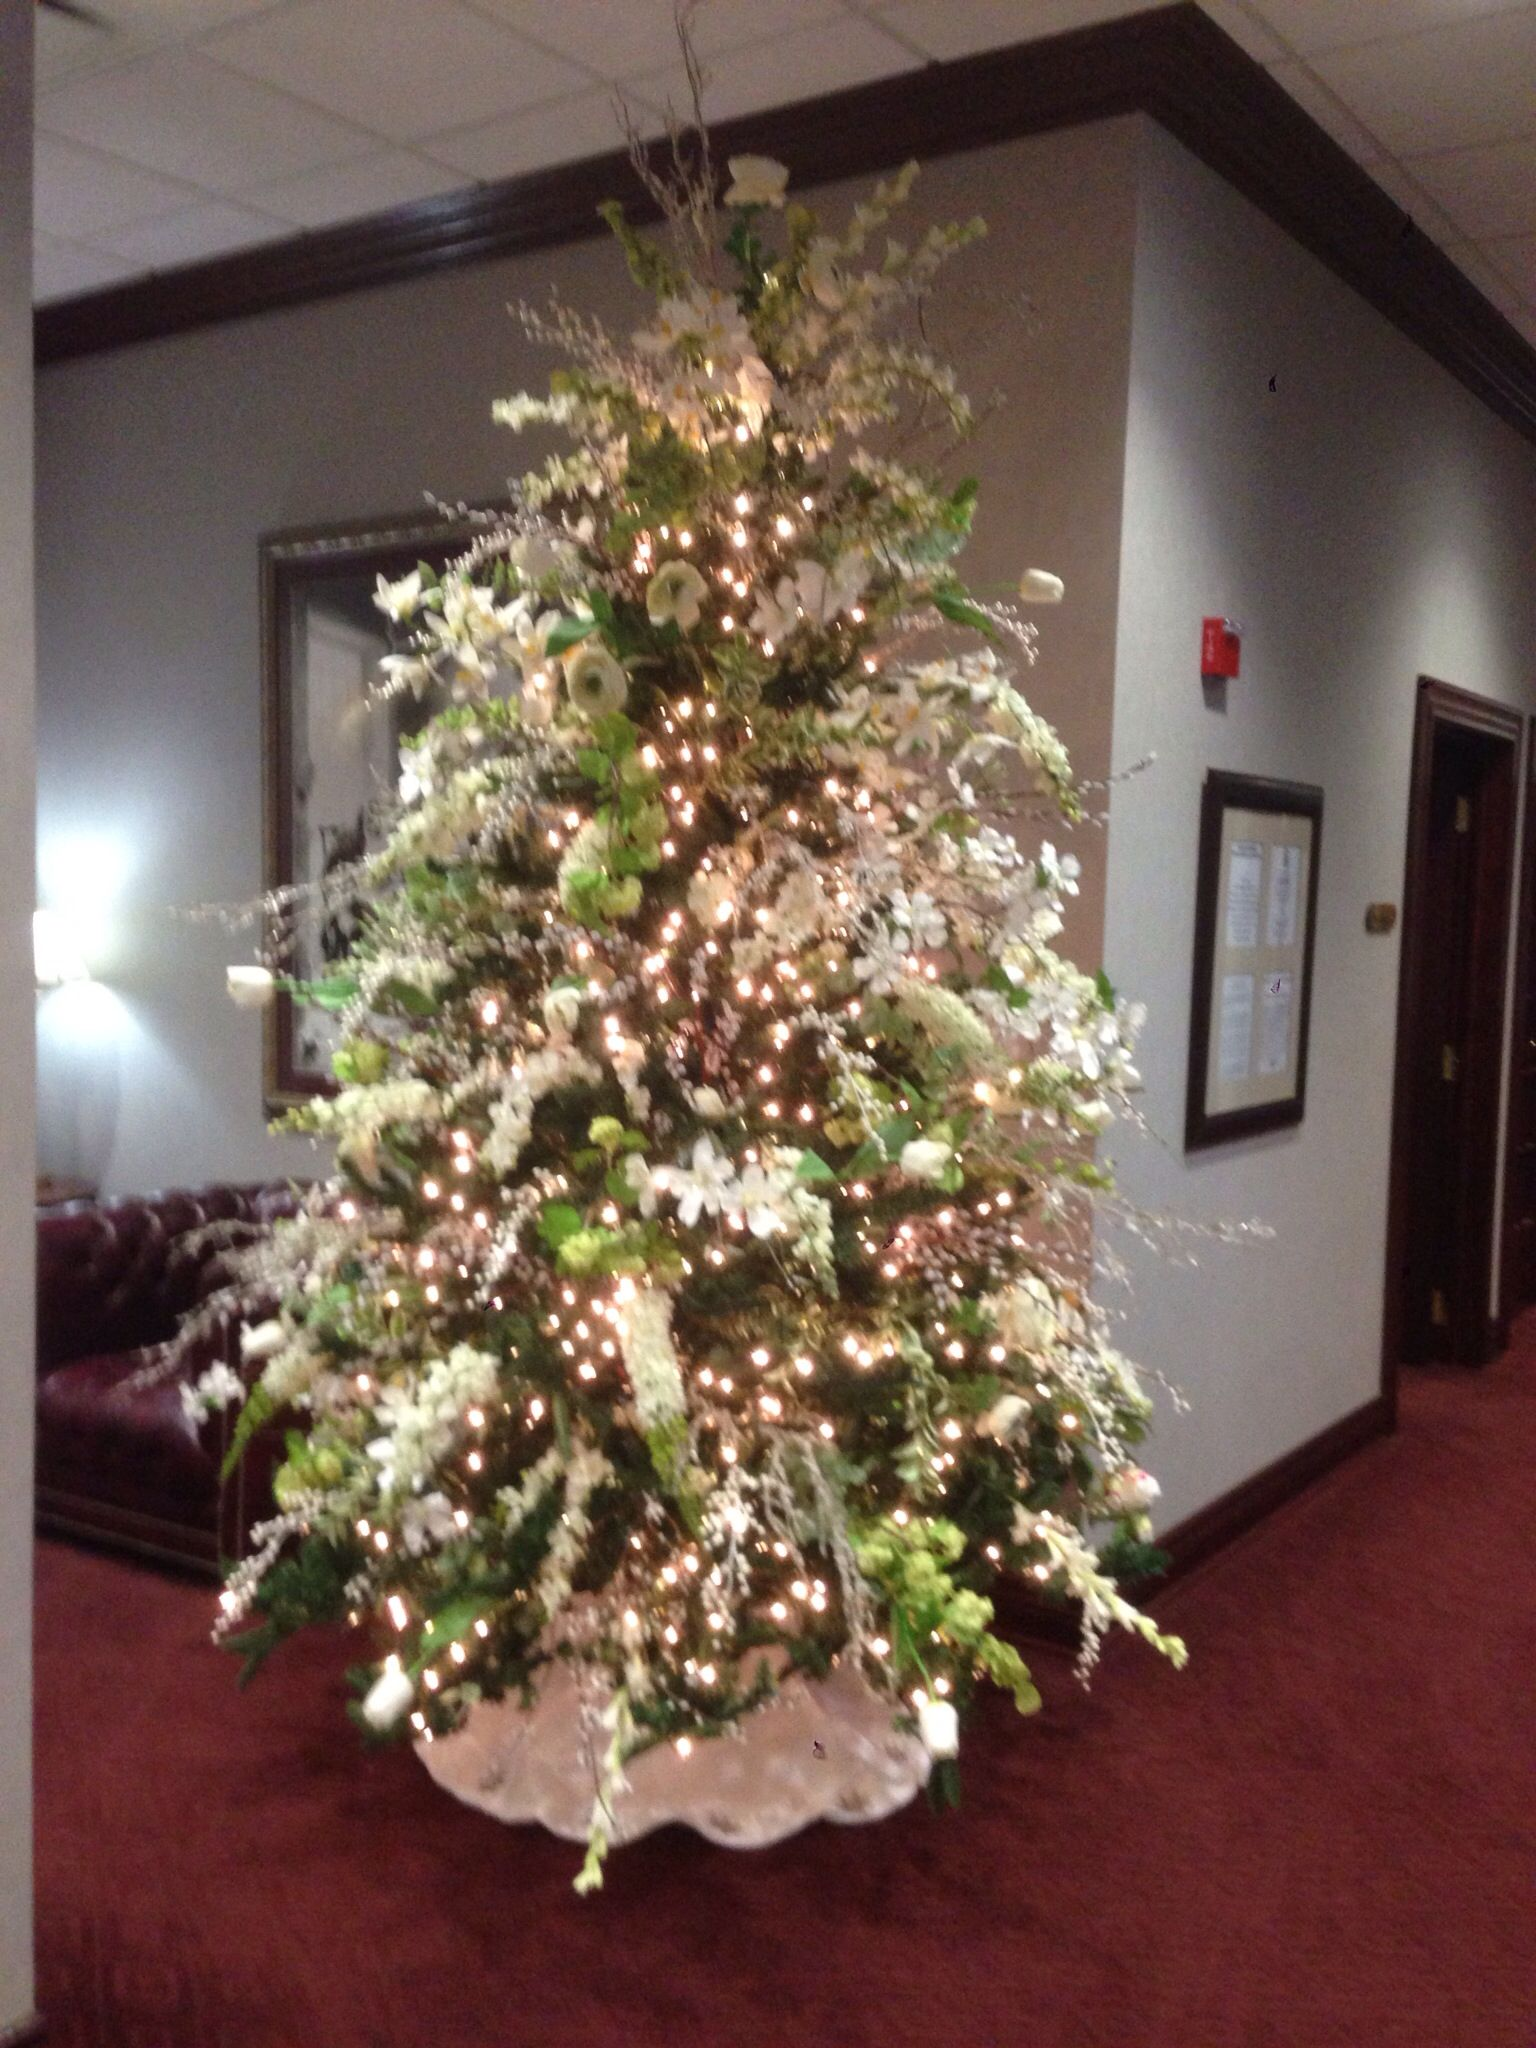 Christmas Tree Decorated With White Flowers Christmas Tree Decorations Tree Decorations Christmas Tree